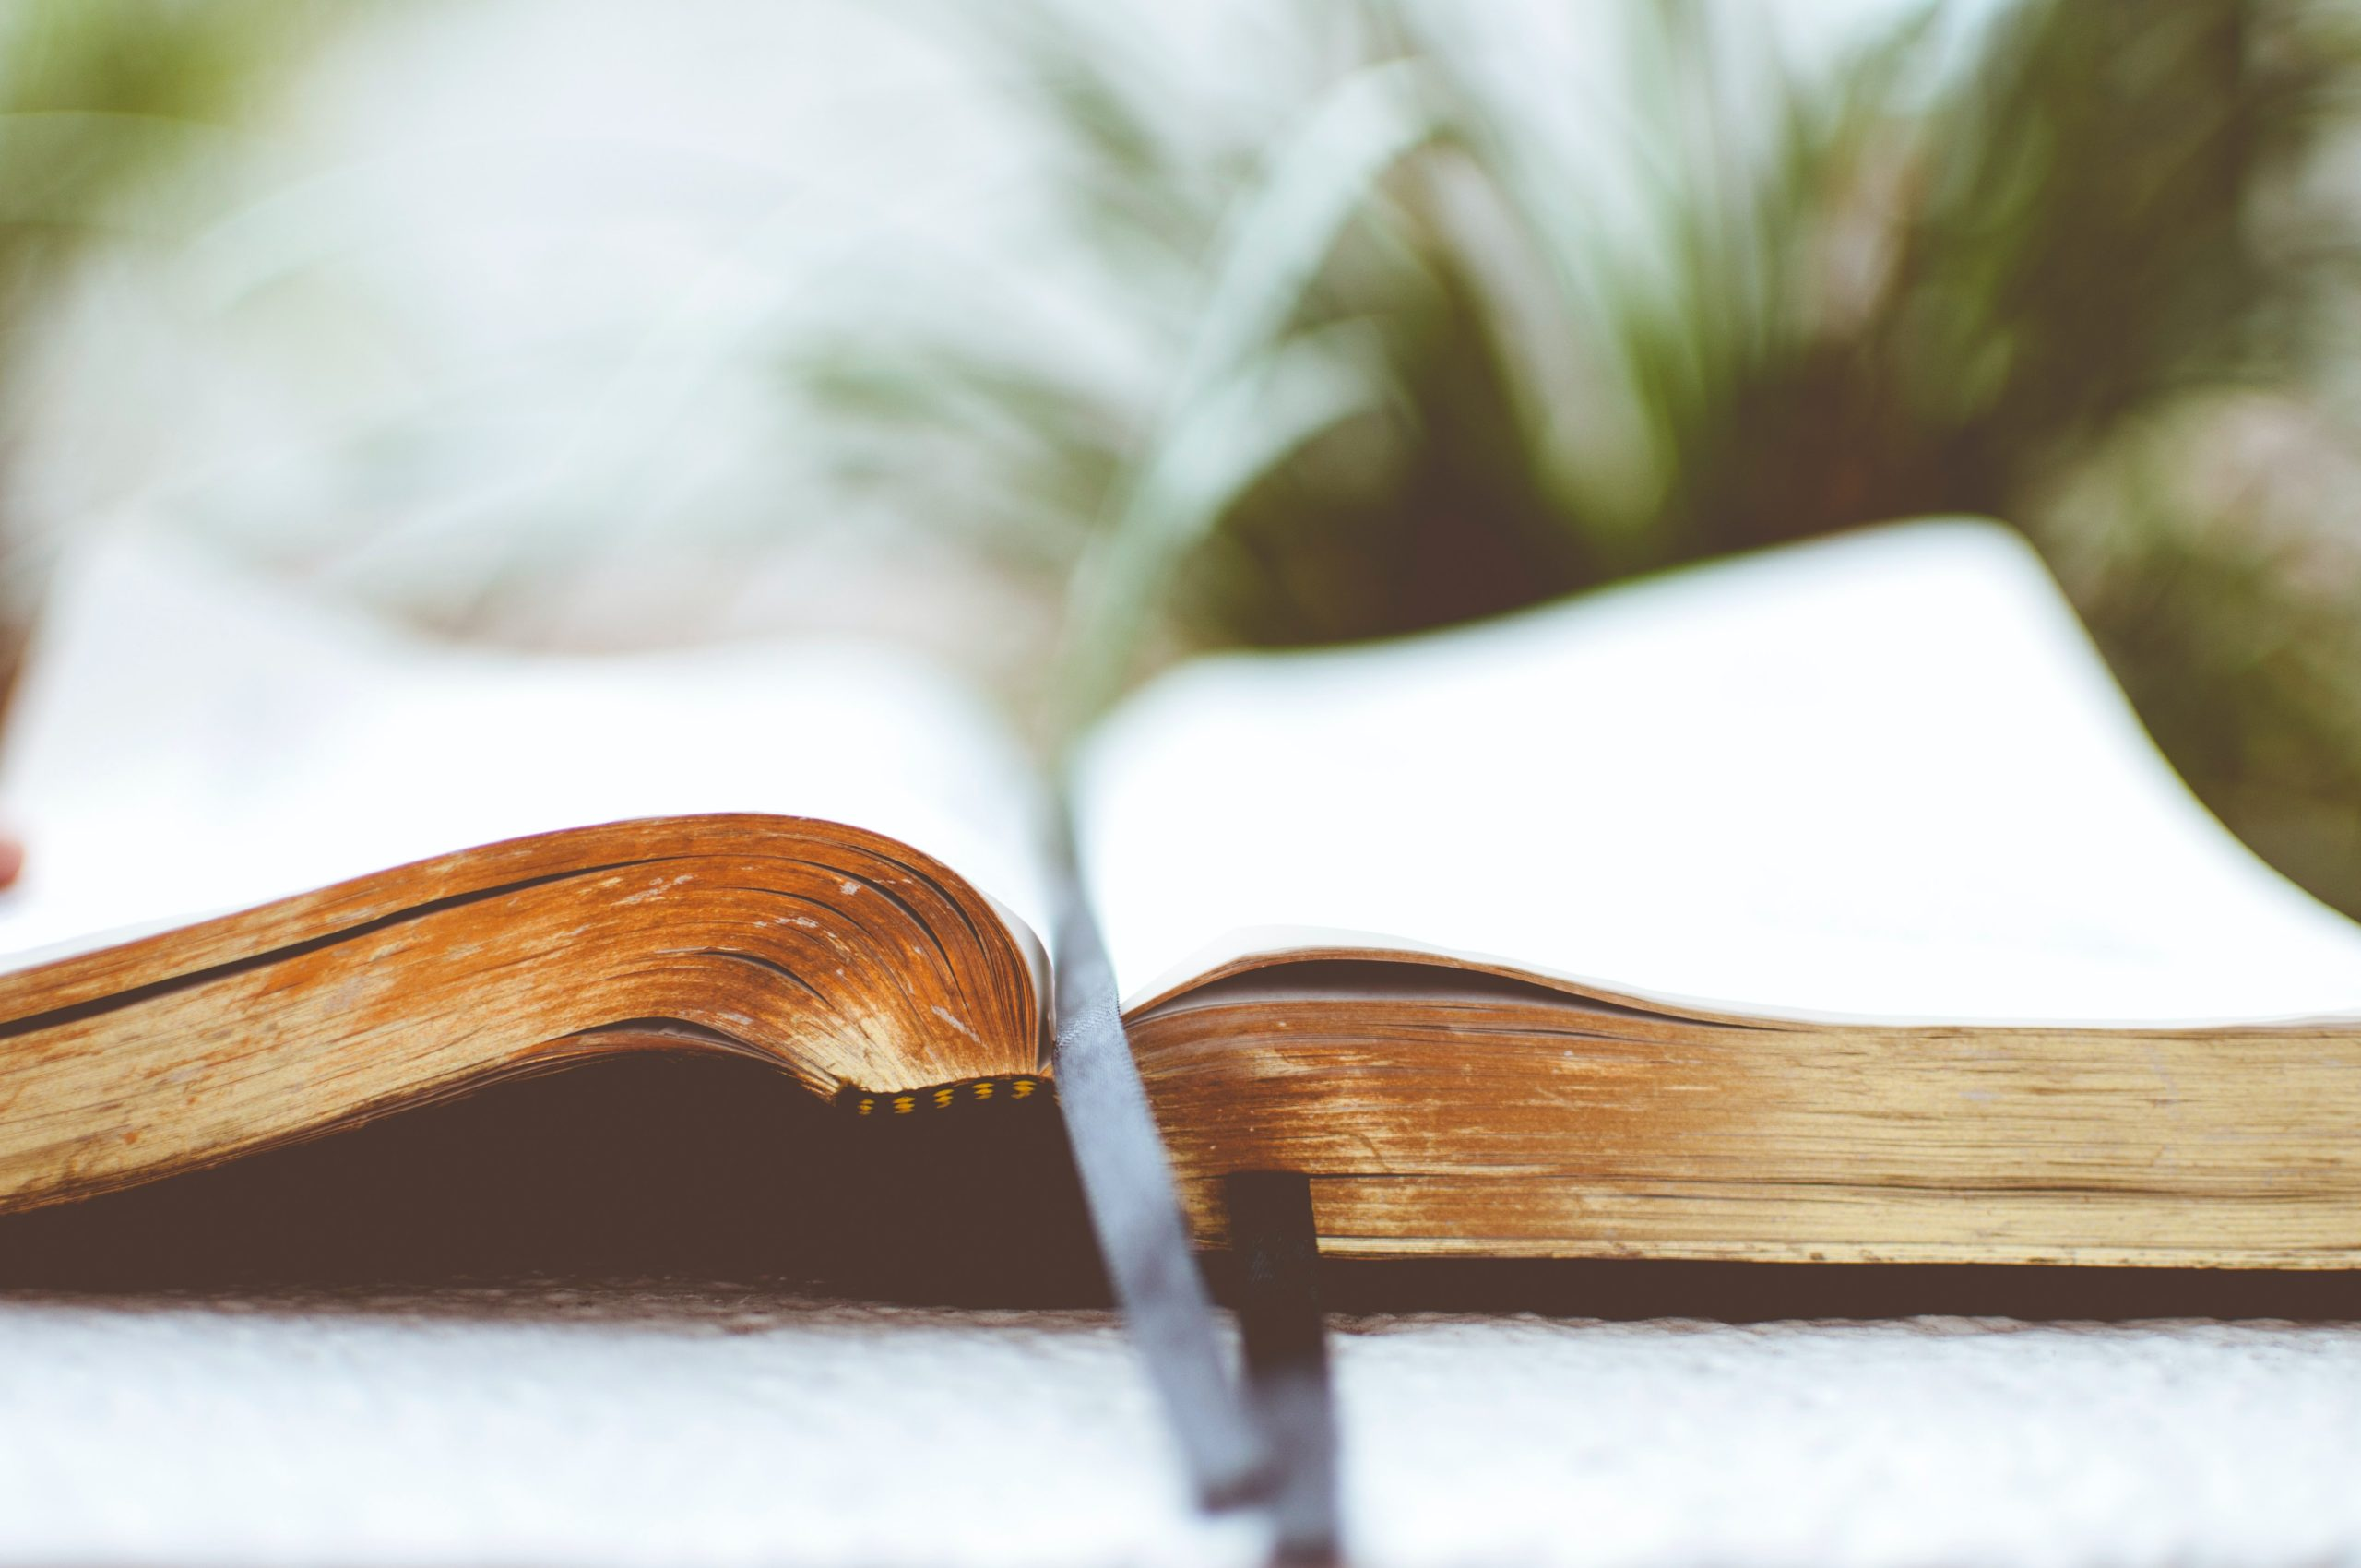 CONSIDER: Connections between Matthew 25 vision, scripture & theology